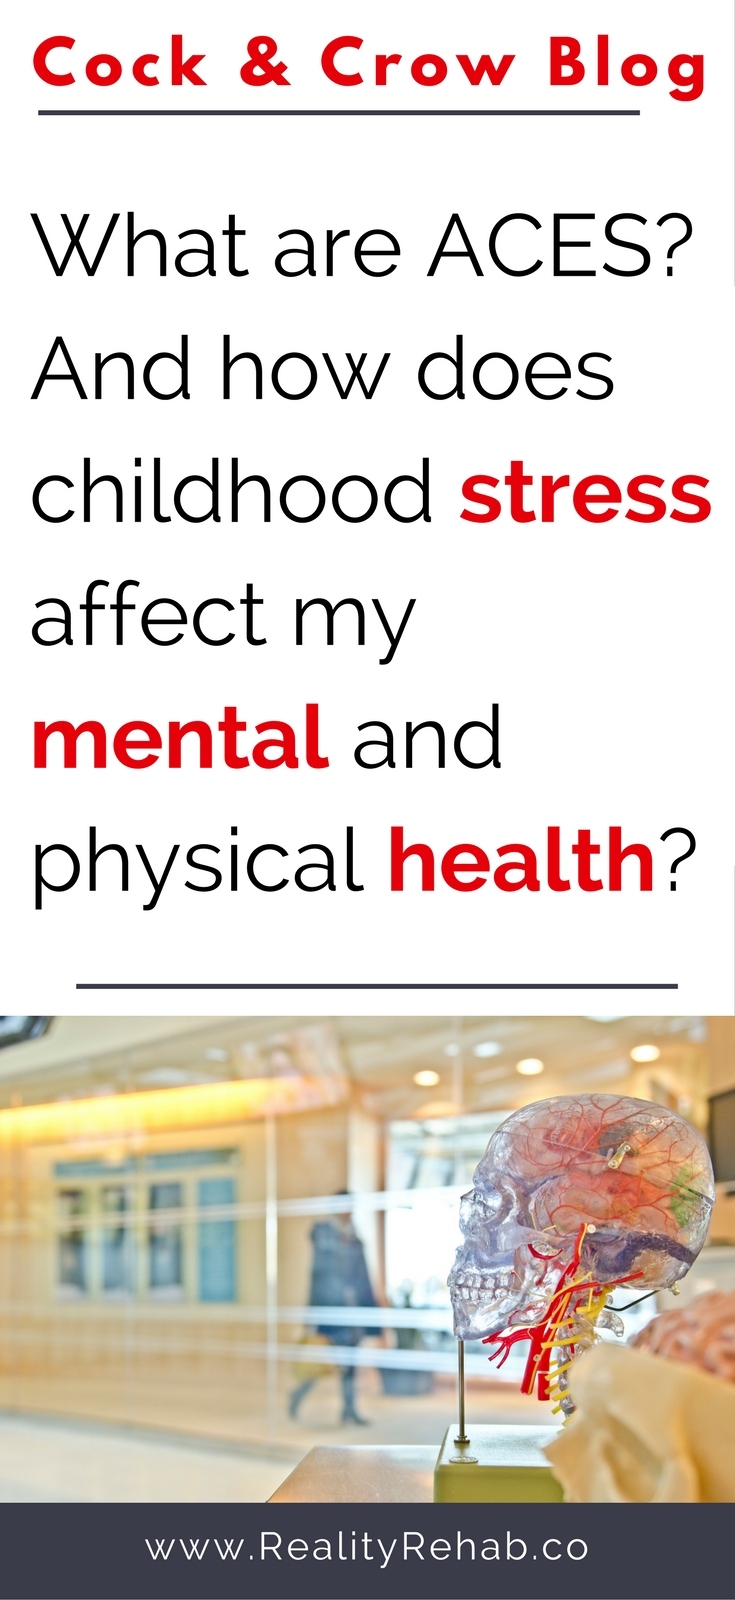 What are ACEs? And how does childhood stress affect my mental and physical health in adulthood? | Cock and Crow -- BLOG